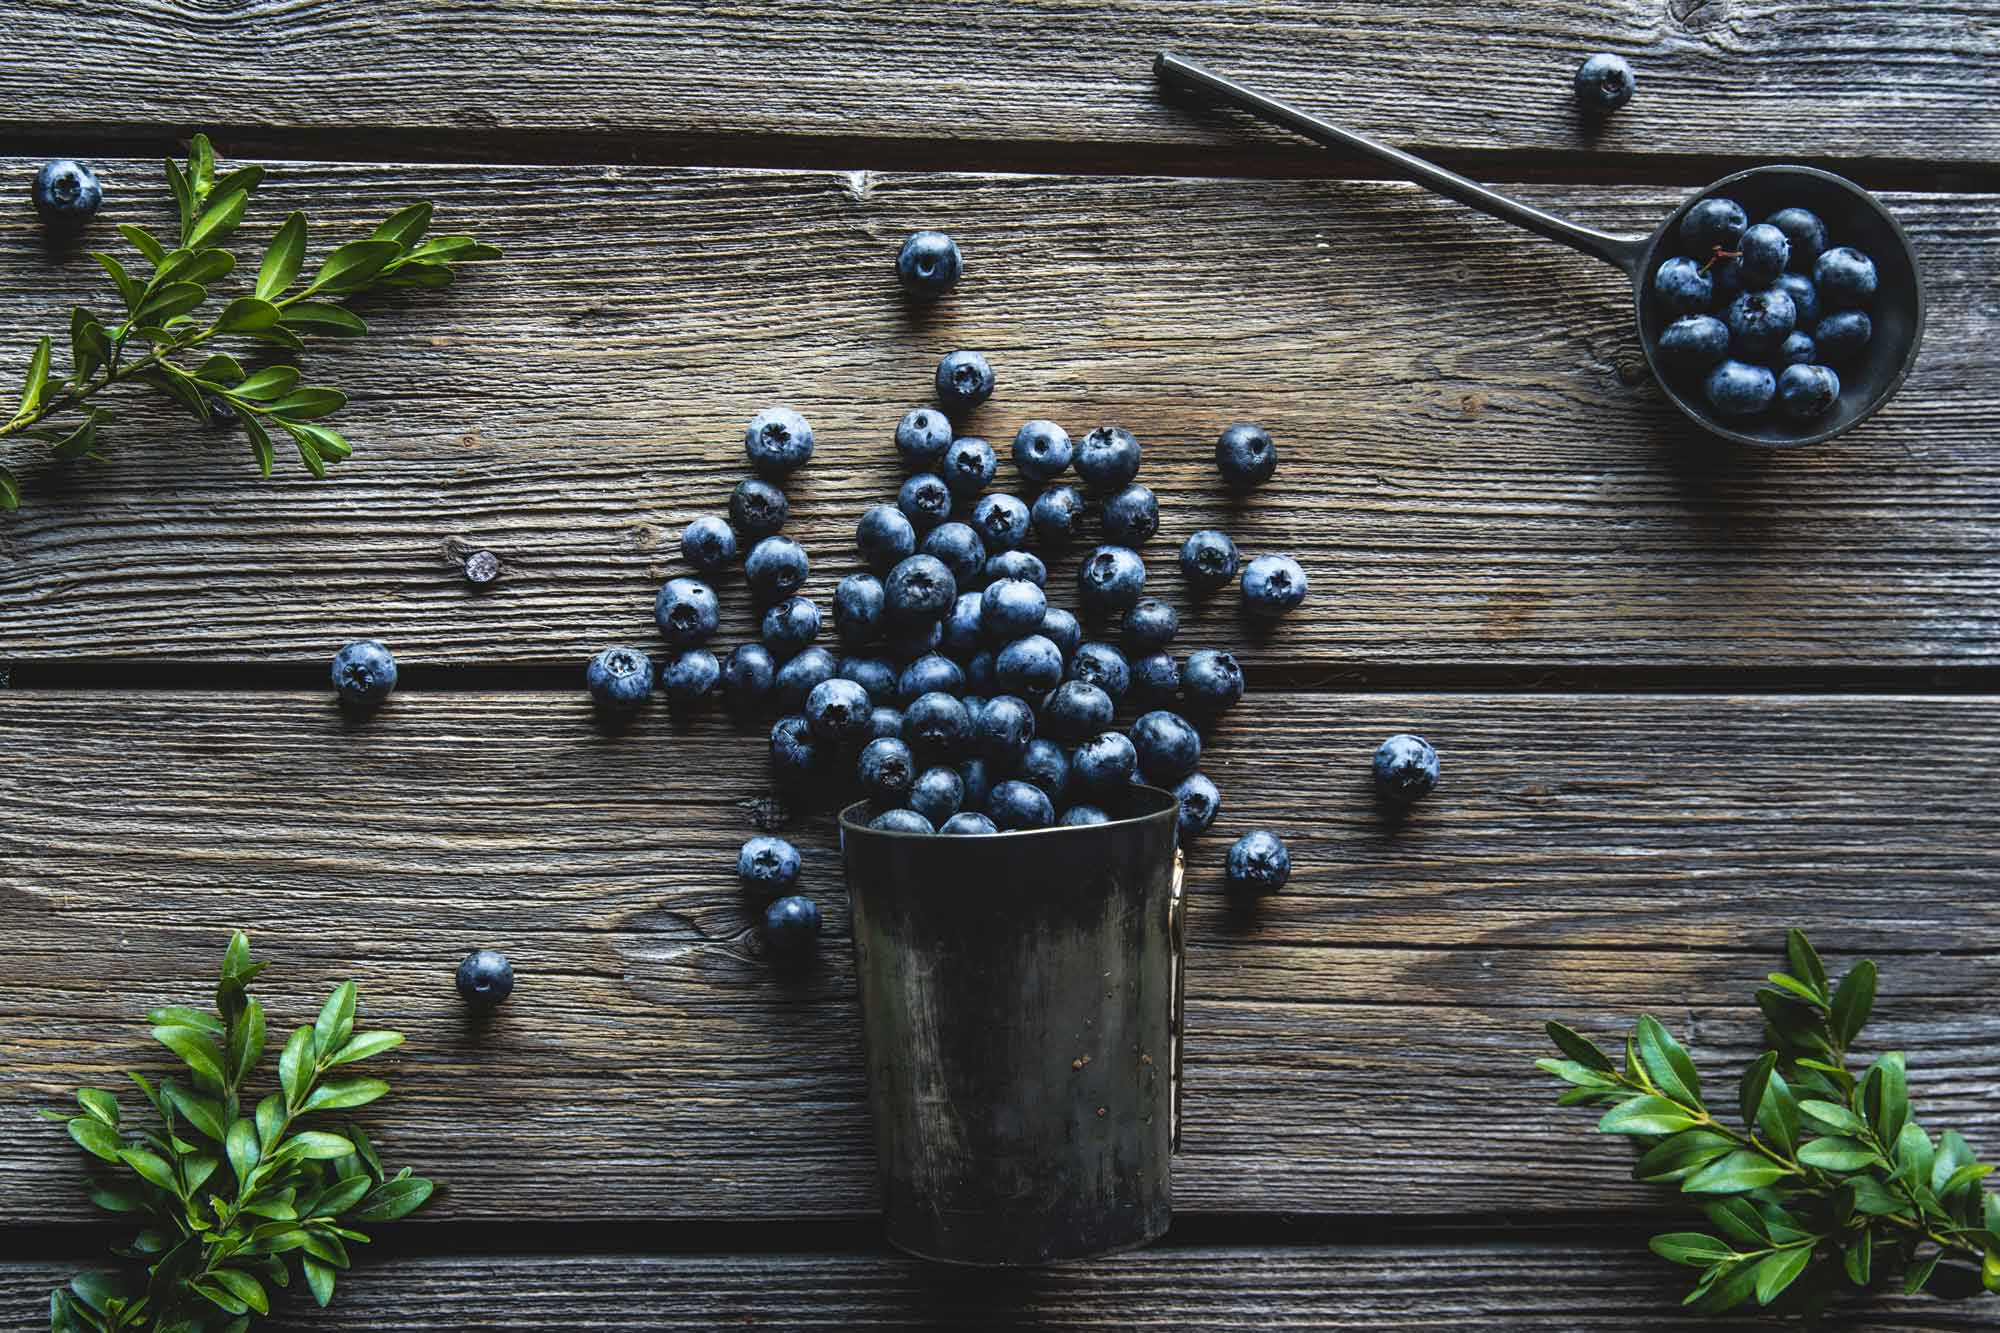 blueberries-in-a-cup-on-a-wooden-background-summer-ECLMV2S